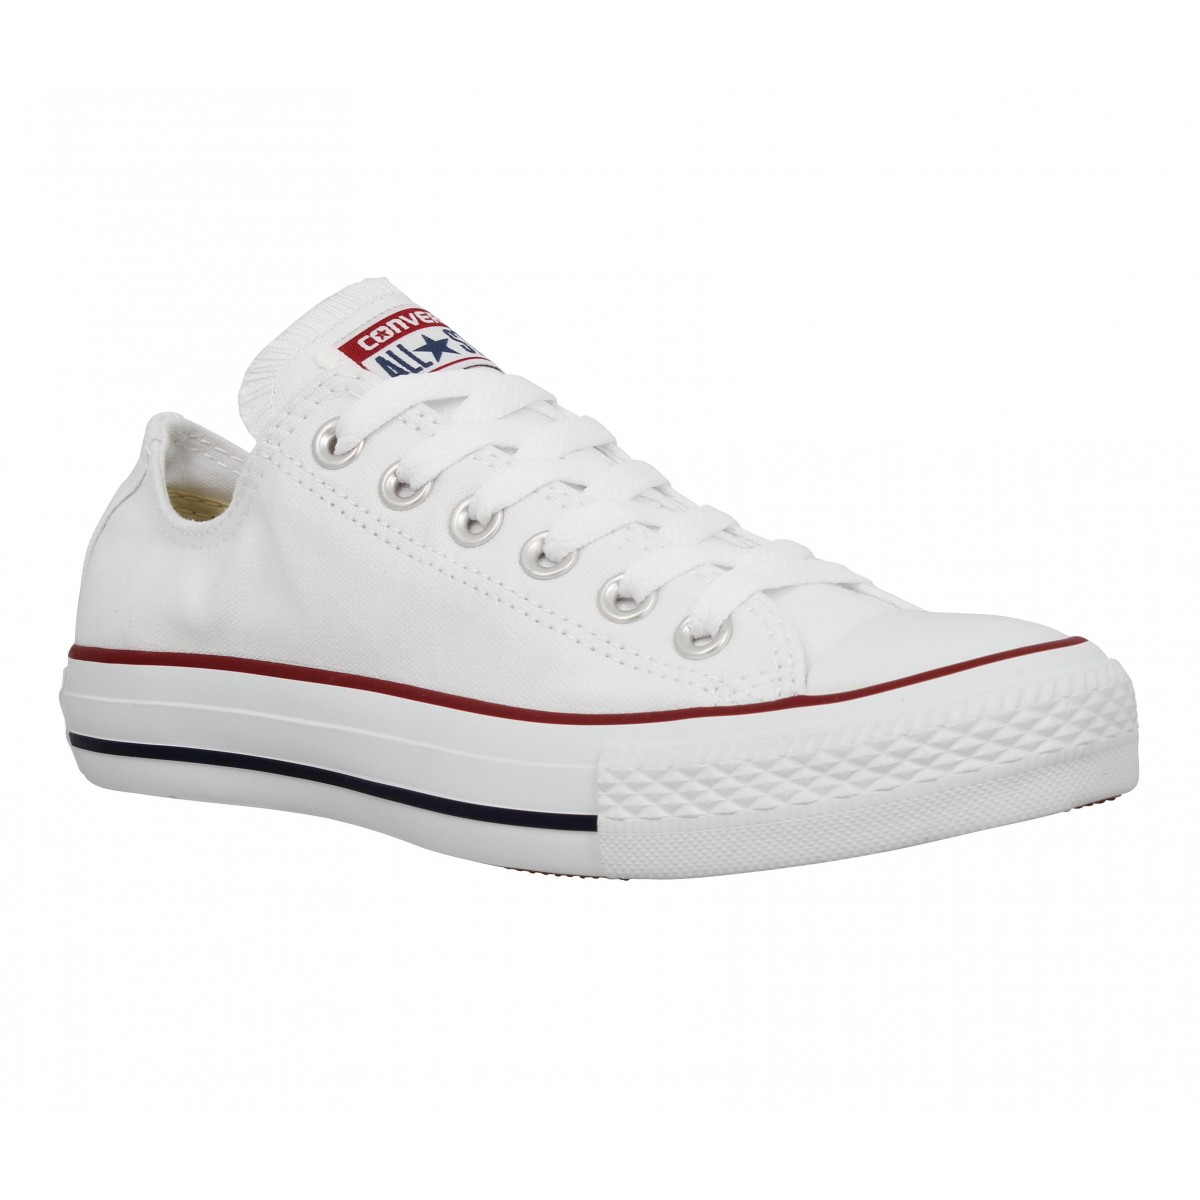 a2a5172246732 Baskets CONVERSE Chuck Taylor All Star toile Homme Blanc